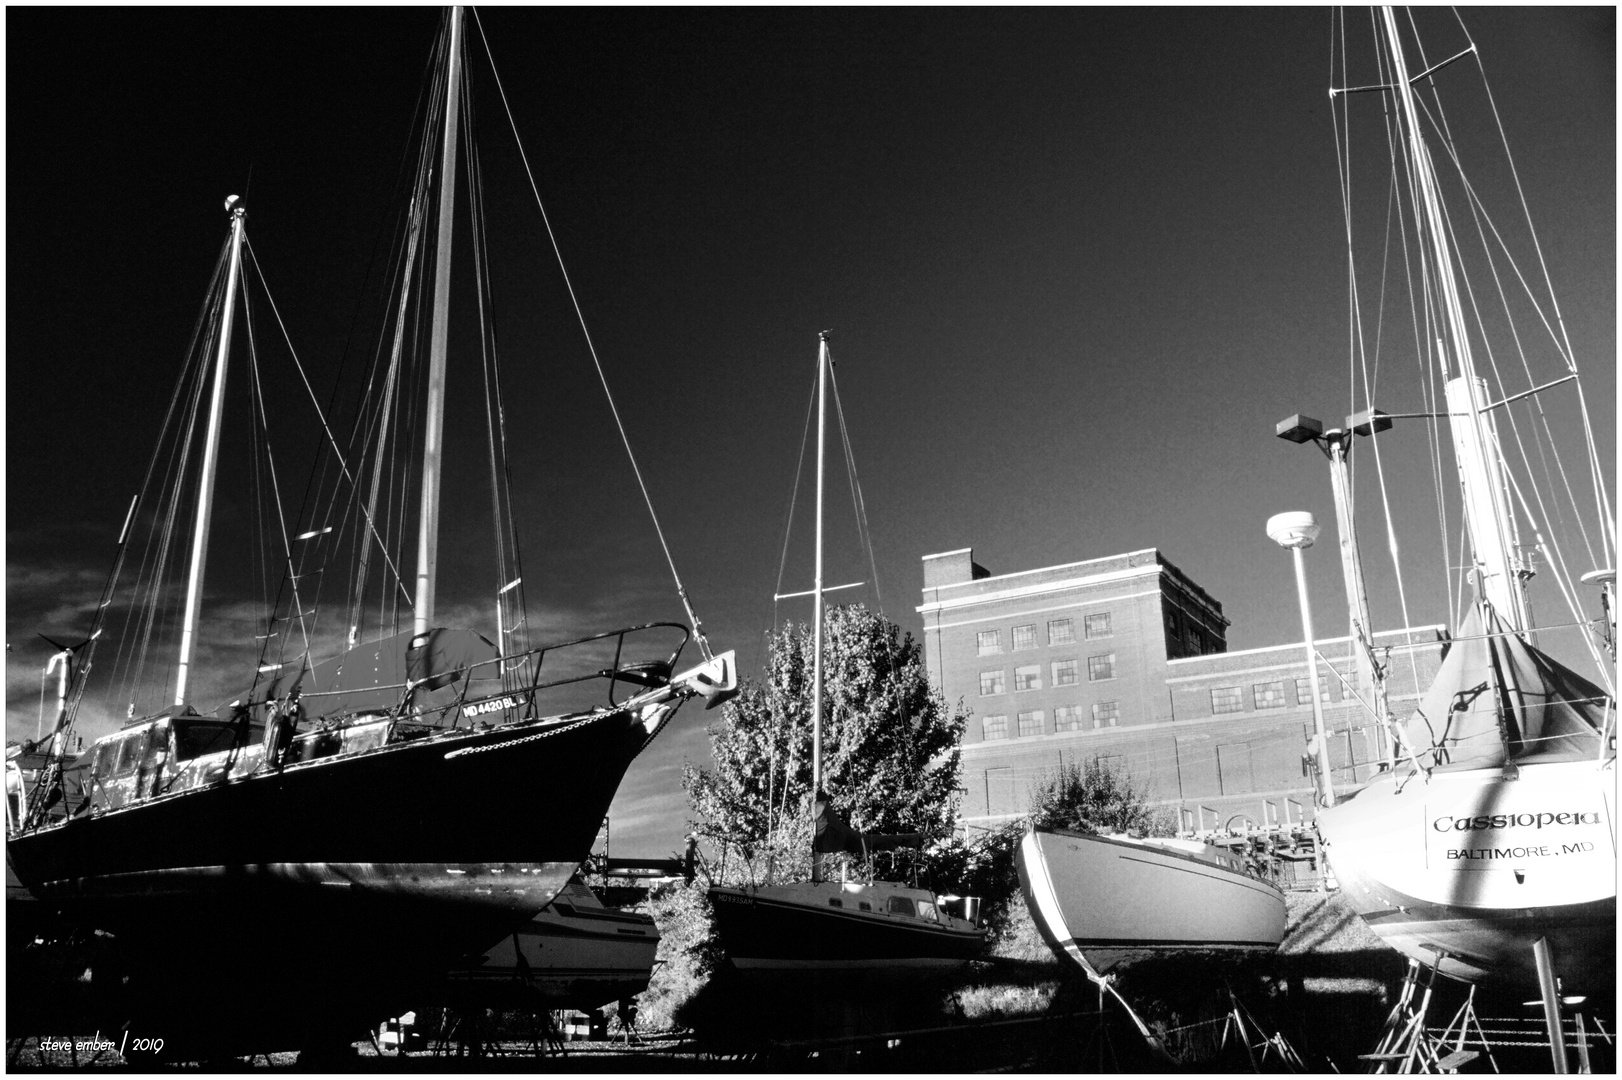 Boatyard, South Baltimore